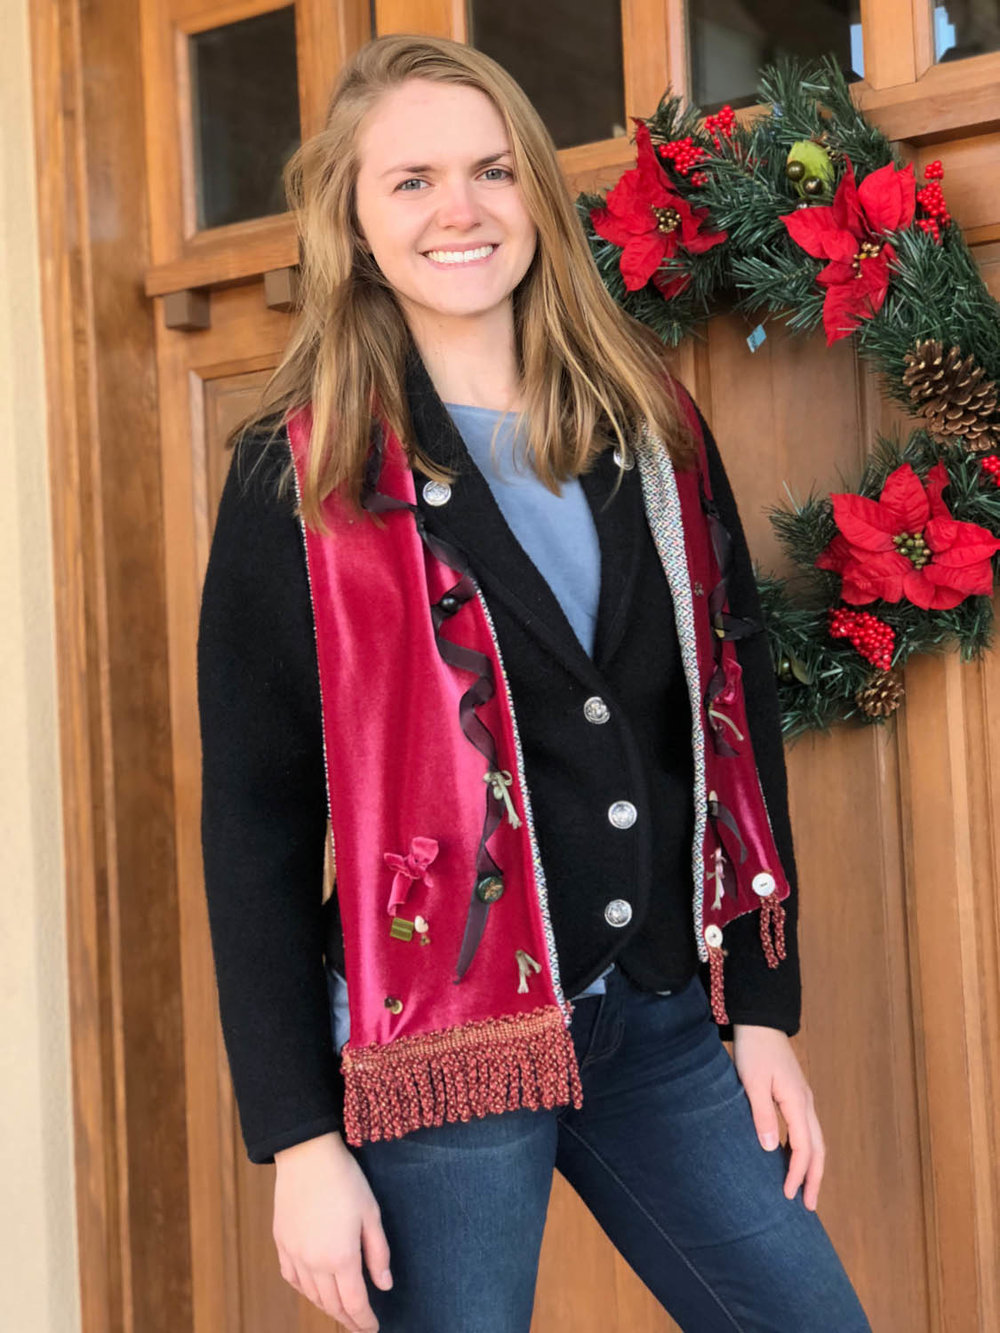 Woman wearing hand made velvet embellished winter scarf by wood door with holiday wreath.